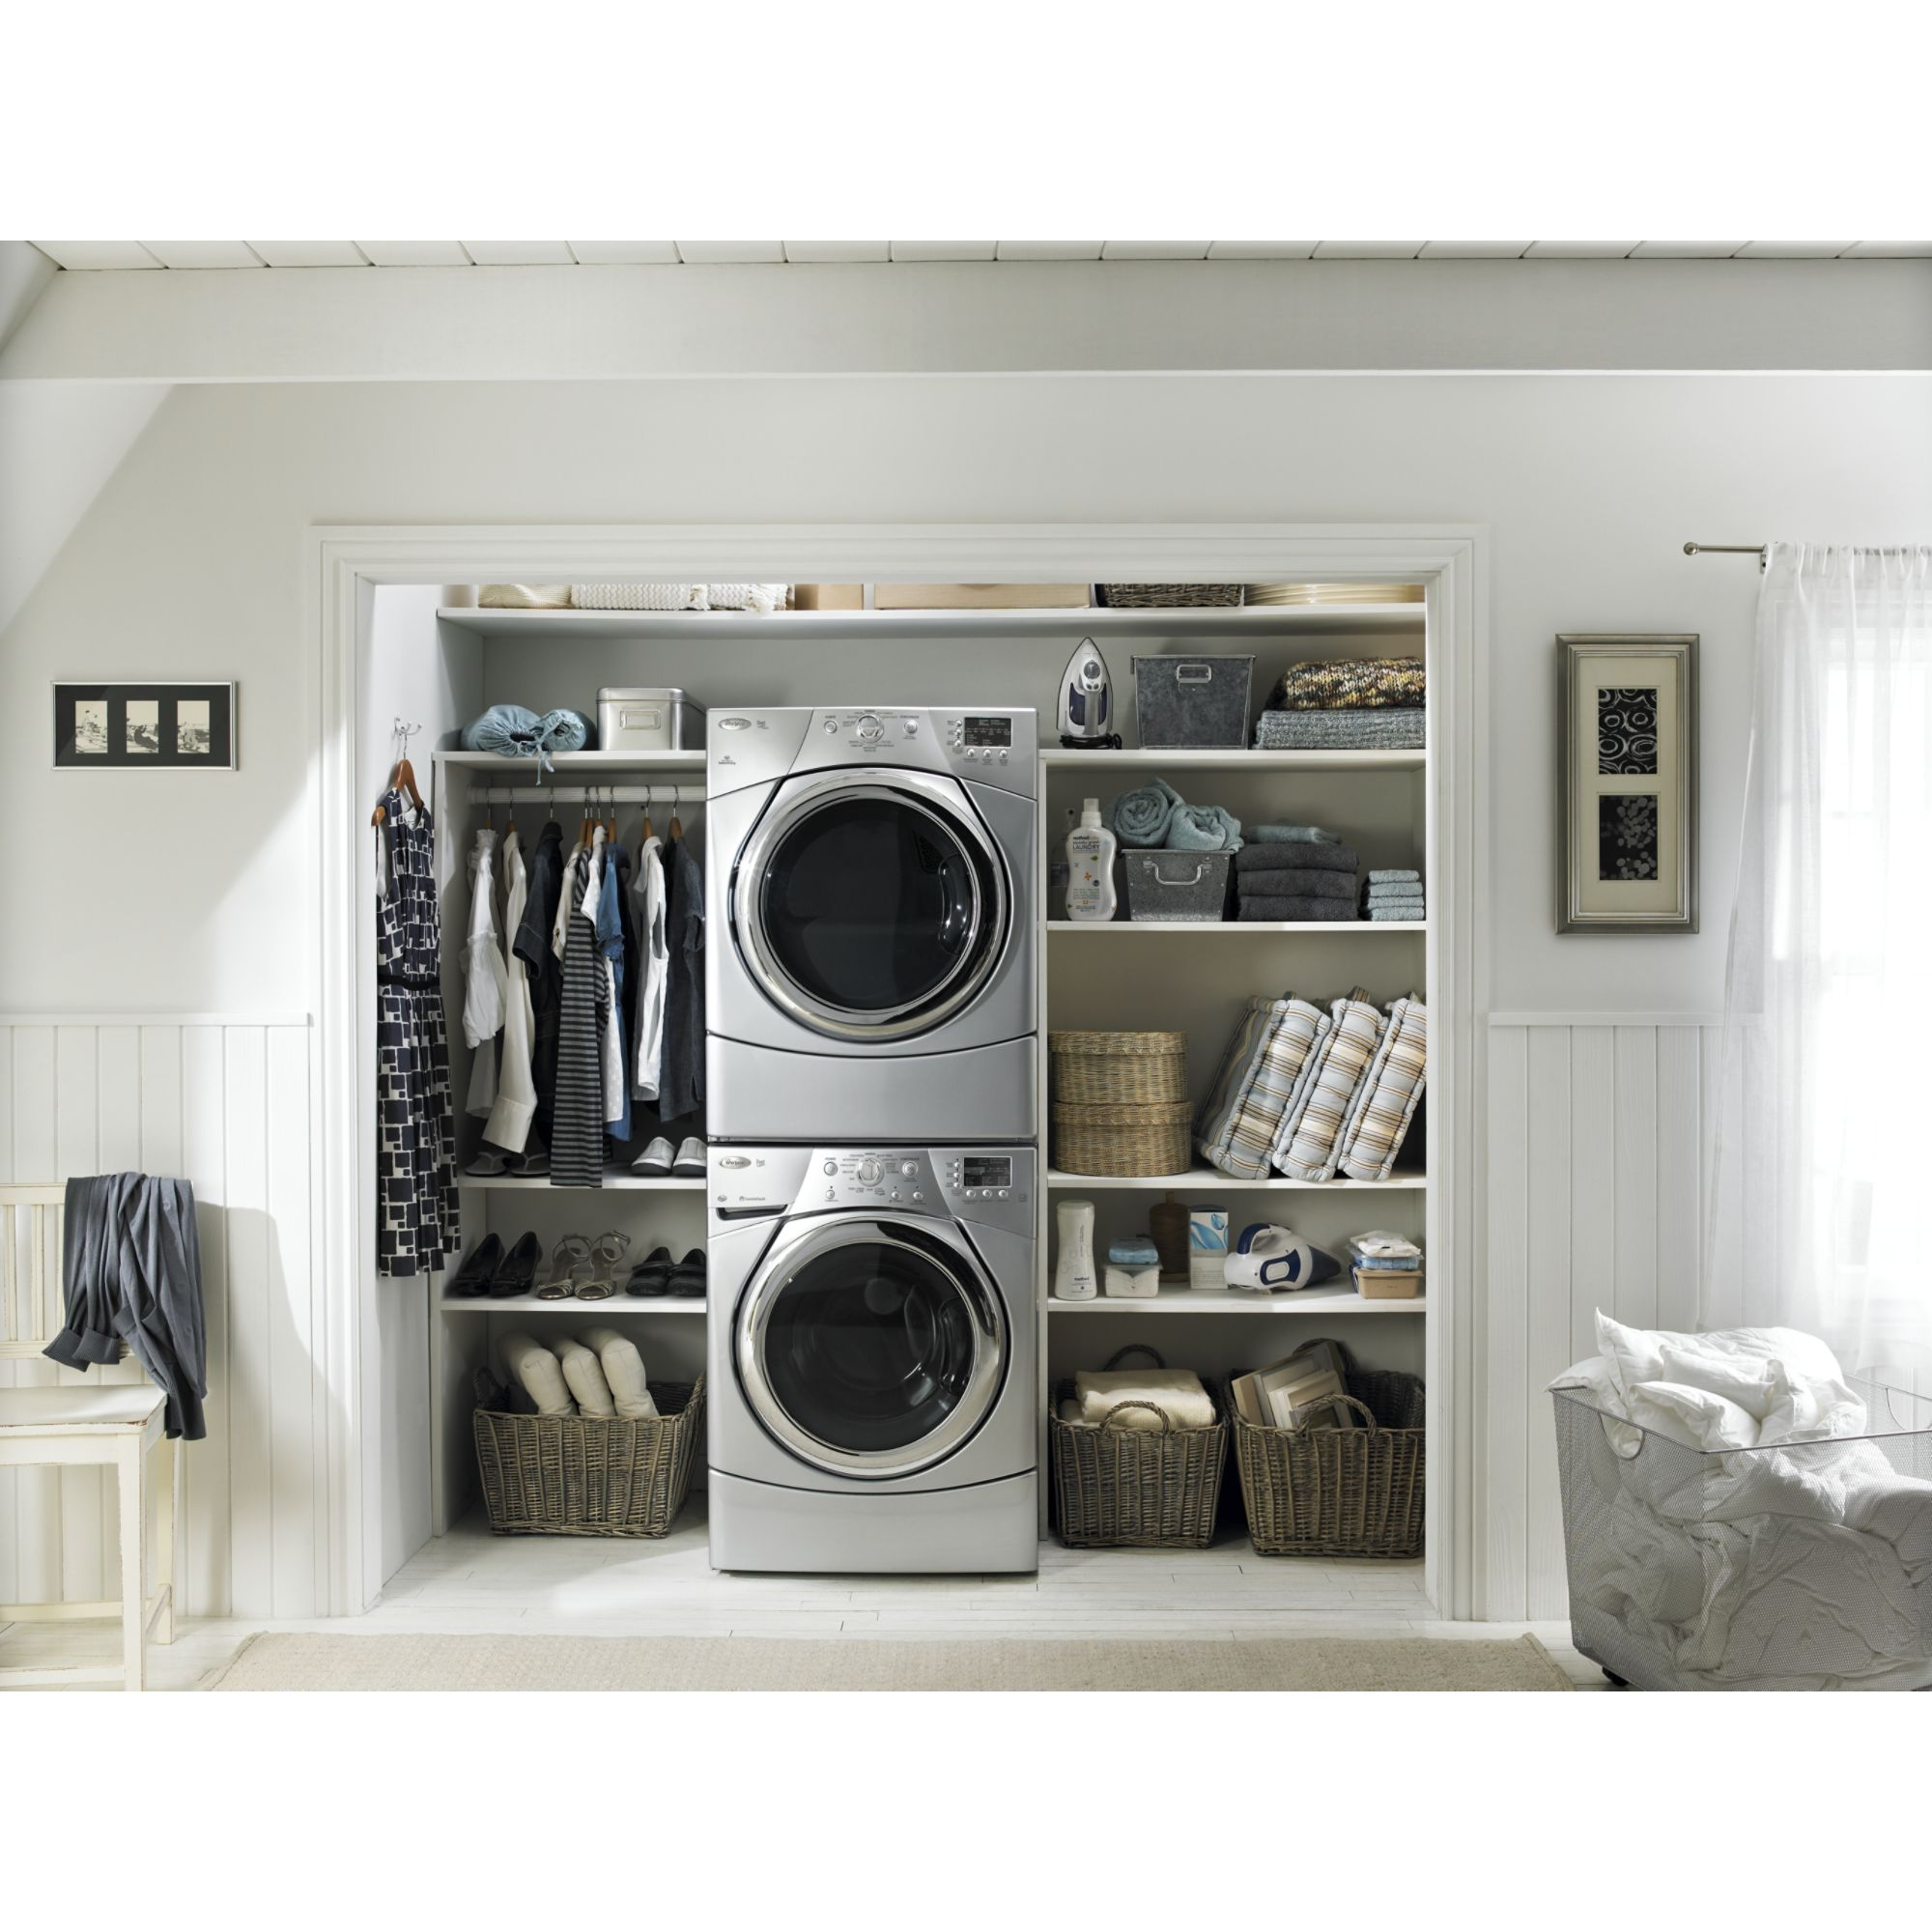 Whirlpool 6.7 cu. ft. Electric Dryer w/ Quick Refresh Steam Cycle - Gray